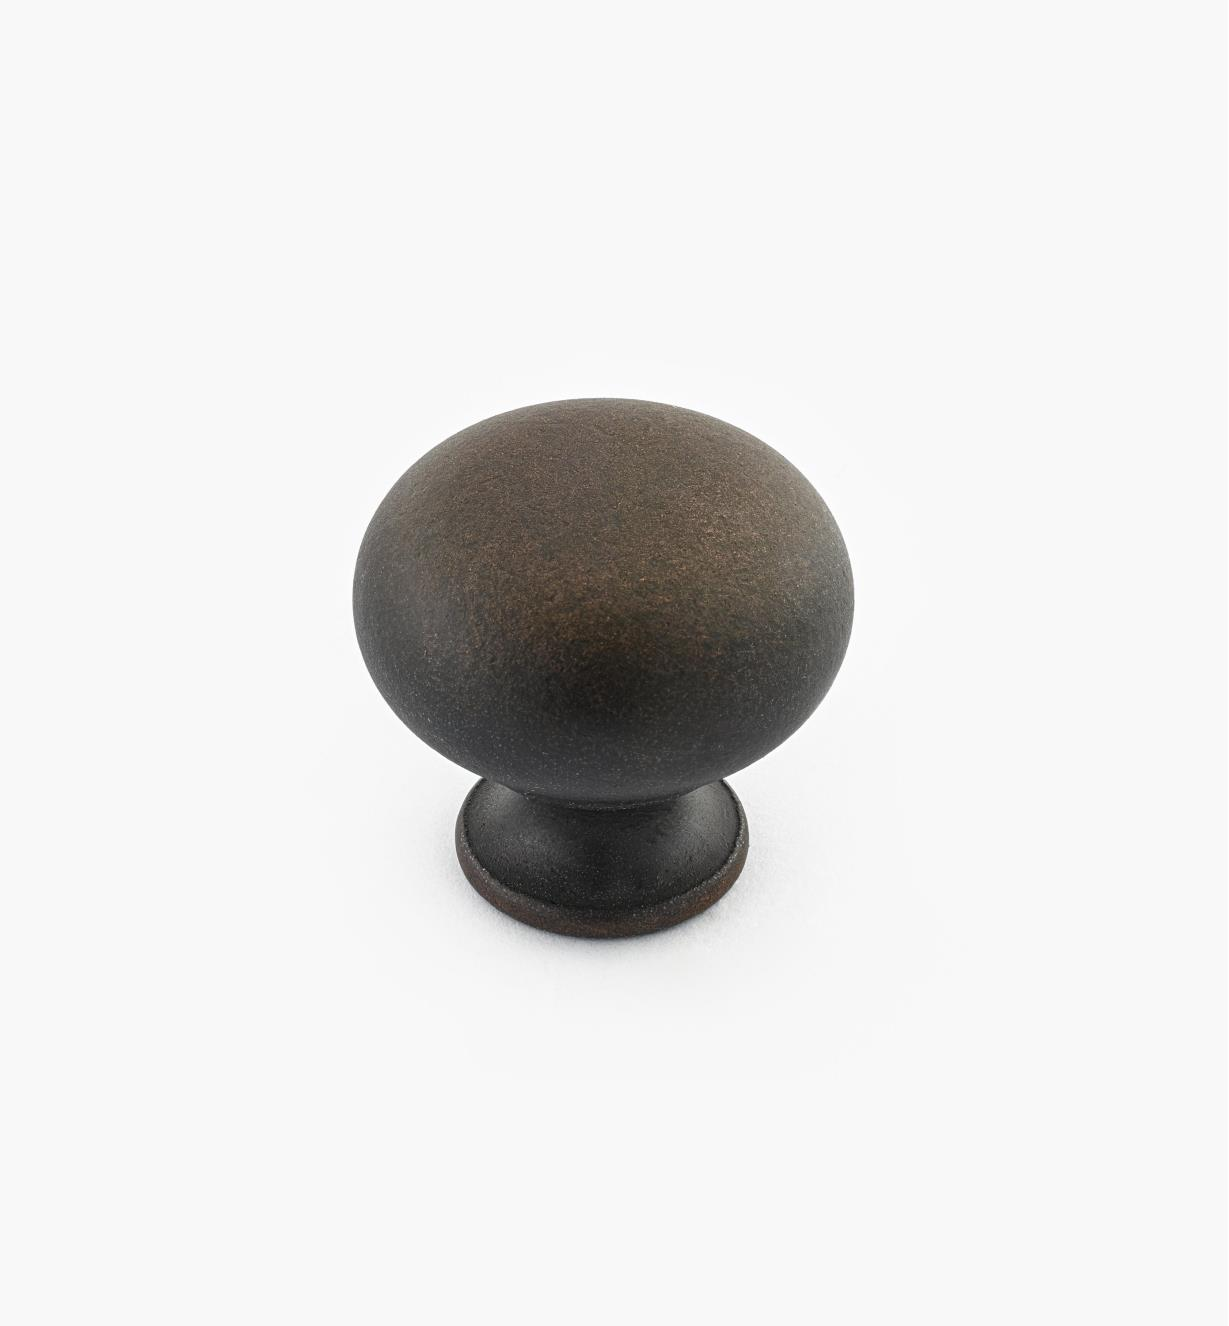 "02W3051 - Weathered Bronze Suite - 1 3/16"" x 1 1/8"" Cast Brass Dome Knob"